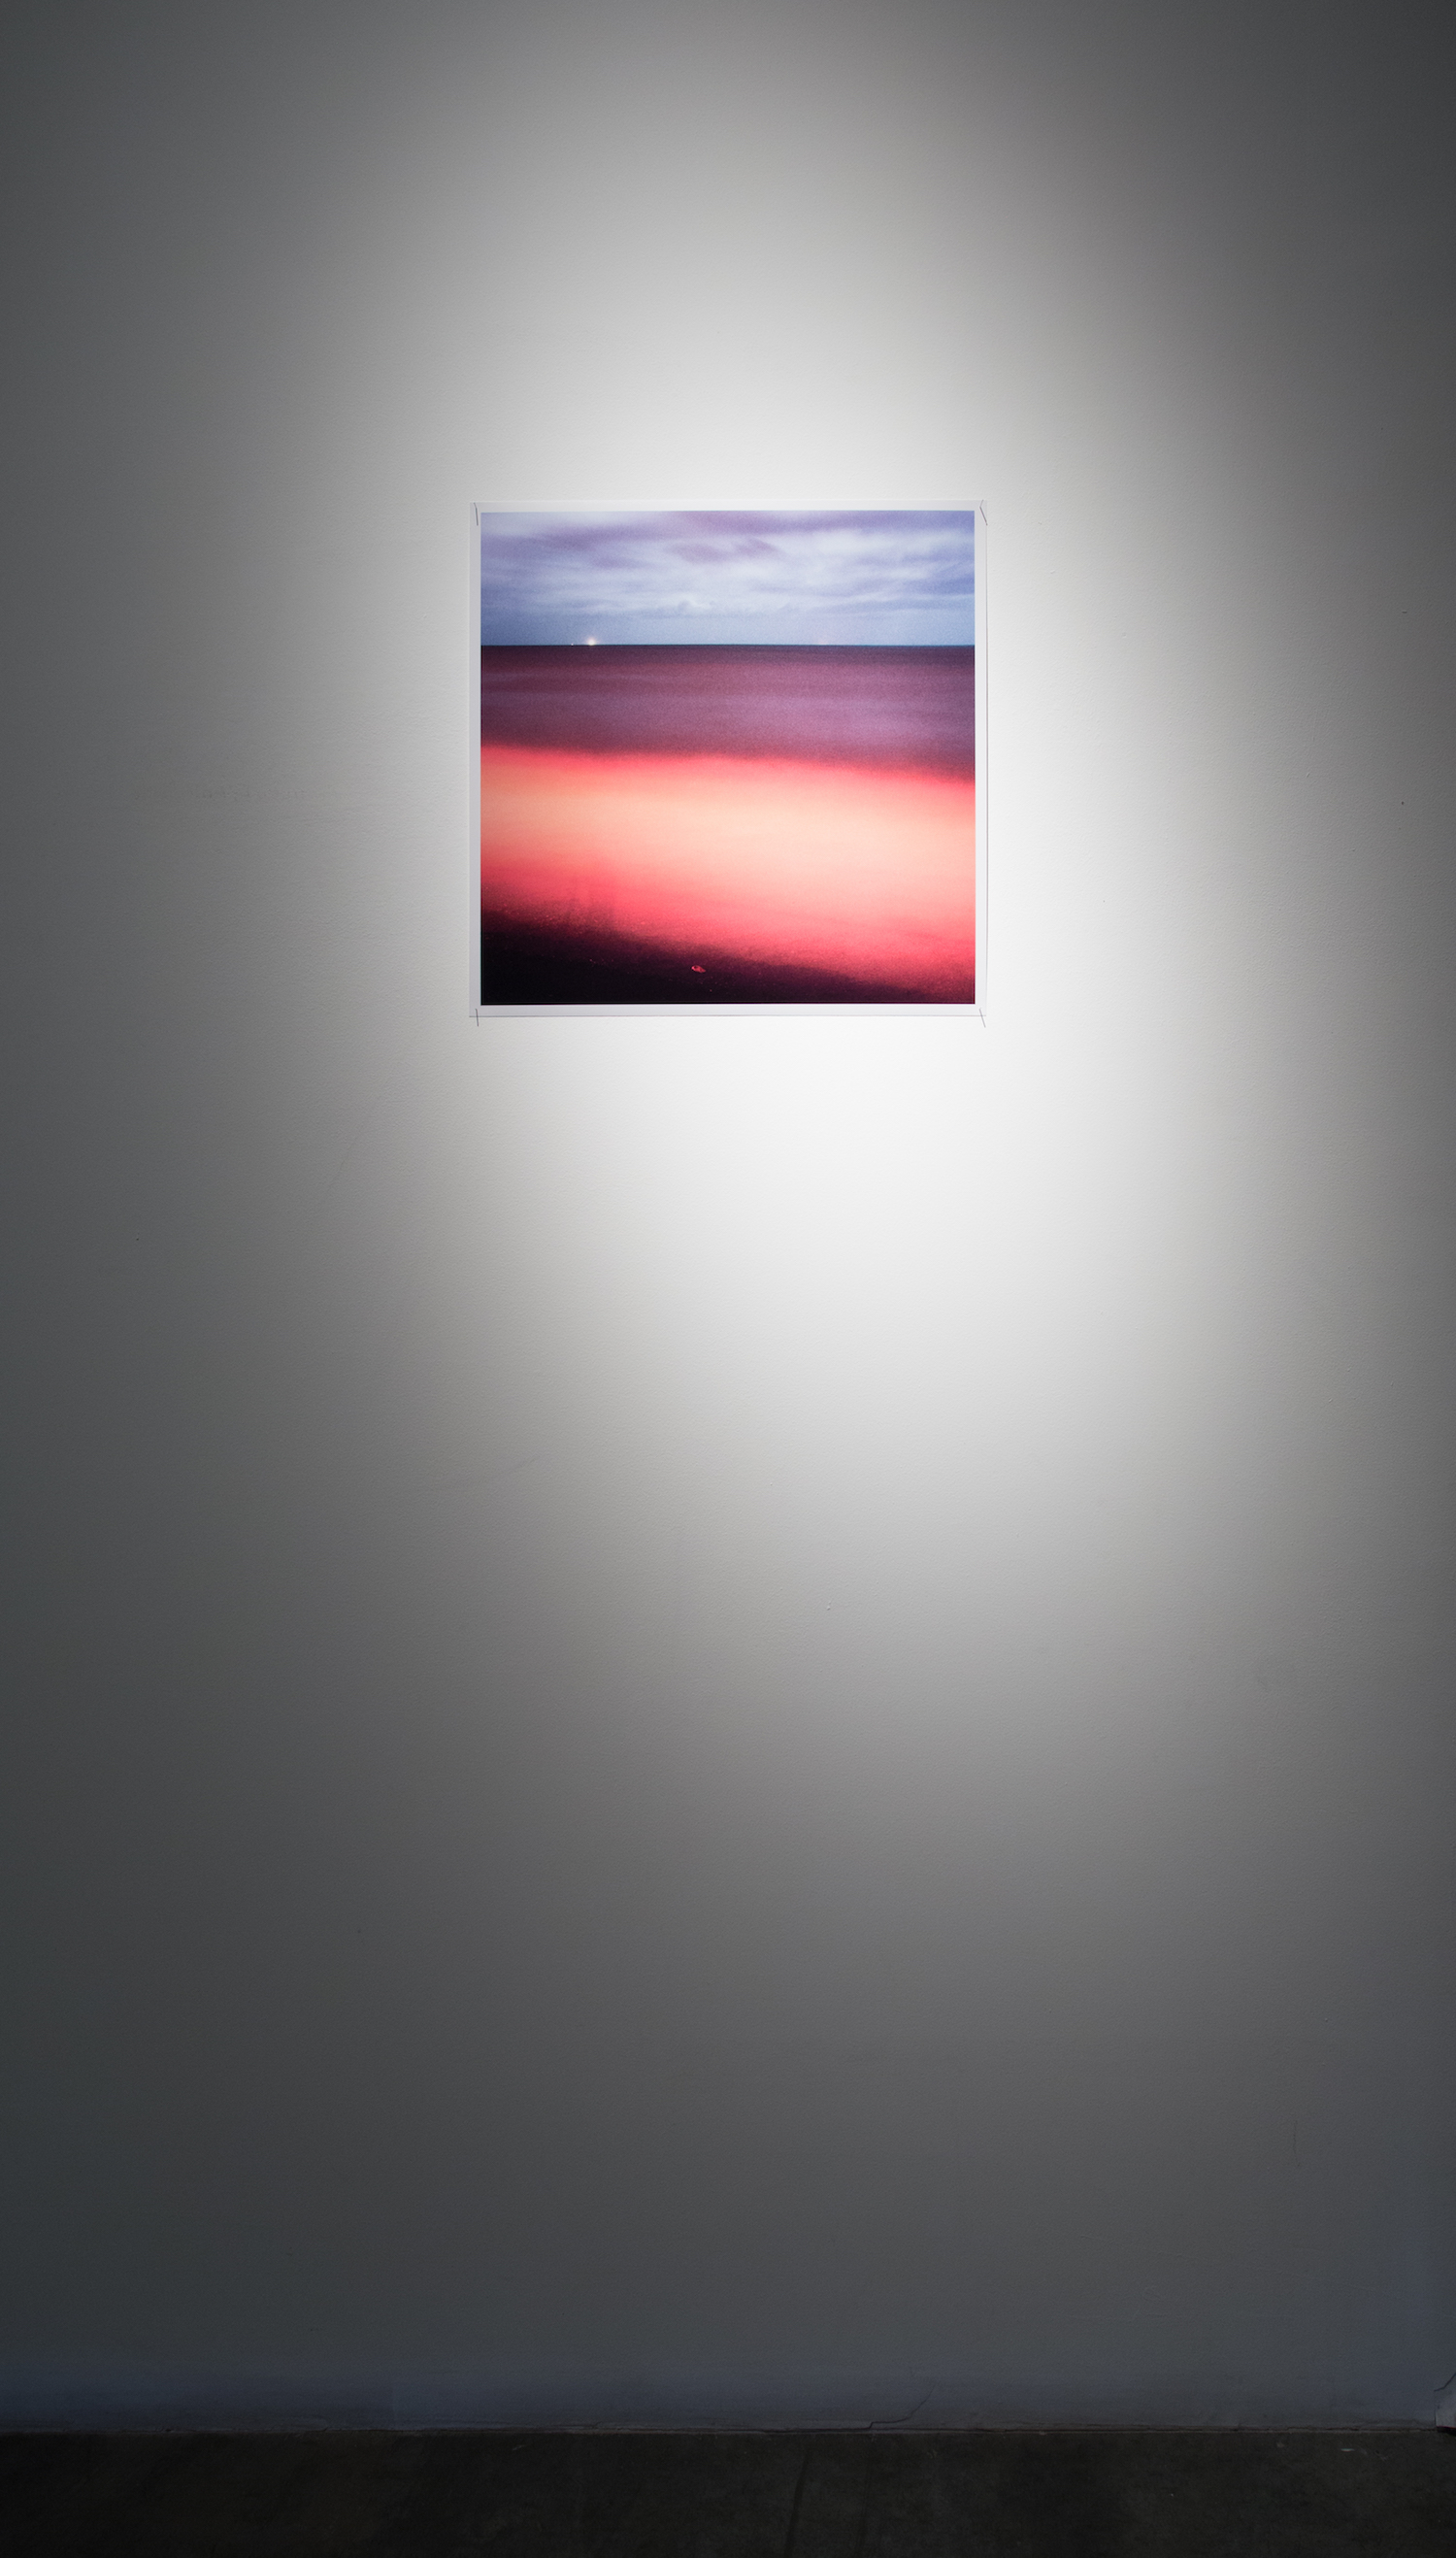 Installation view  Michael John Whelan That we were to wait 2015 C-print 45.5 x 45.5 cm Ed of 5 + 2 AP